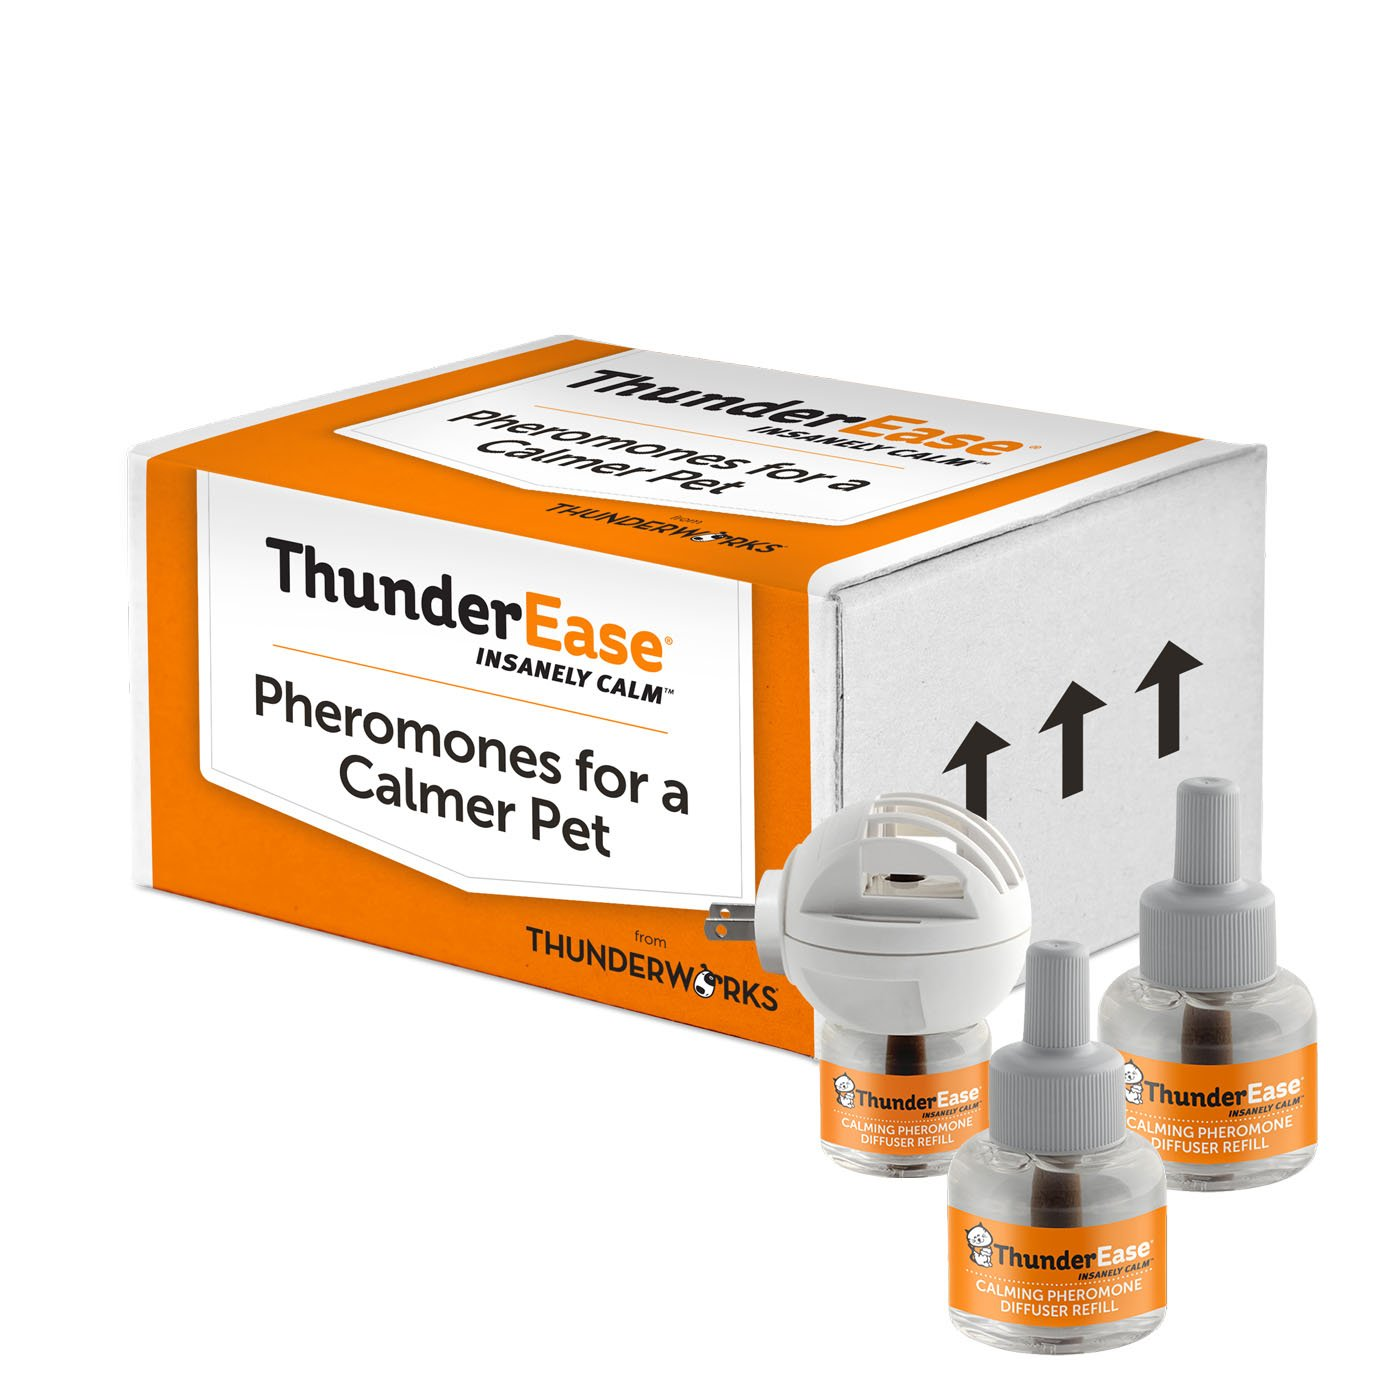 ThunderEase Cat Calming Pheromone Diffuser Kit | Powered by FELIWAY | Reduce Scratching, Urine Spraying, Marking and Anxiety (90 Day Supply) by ThunderEase